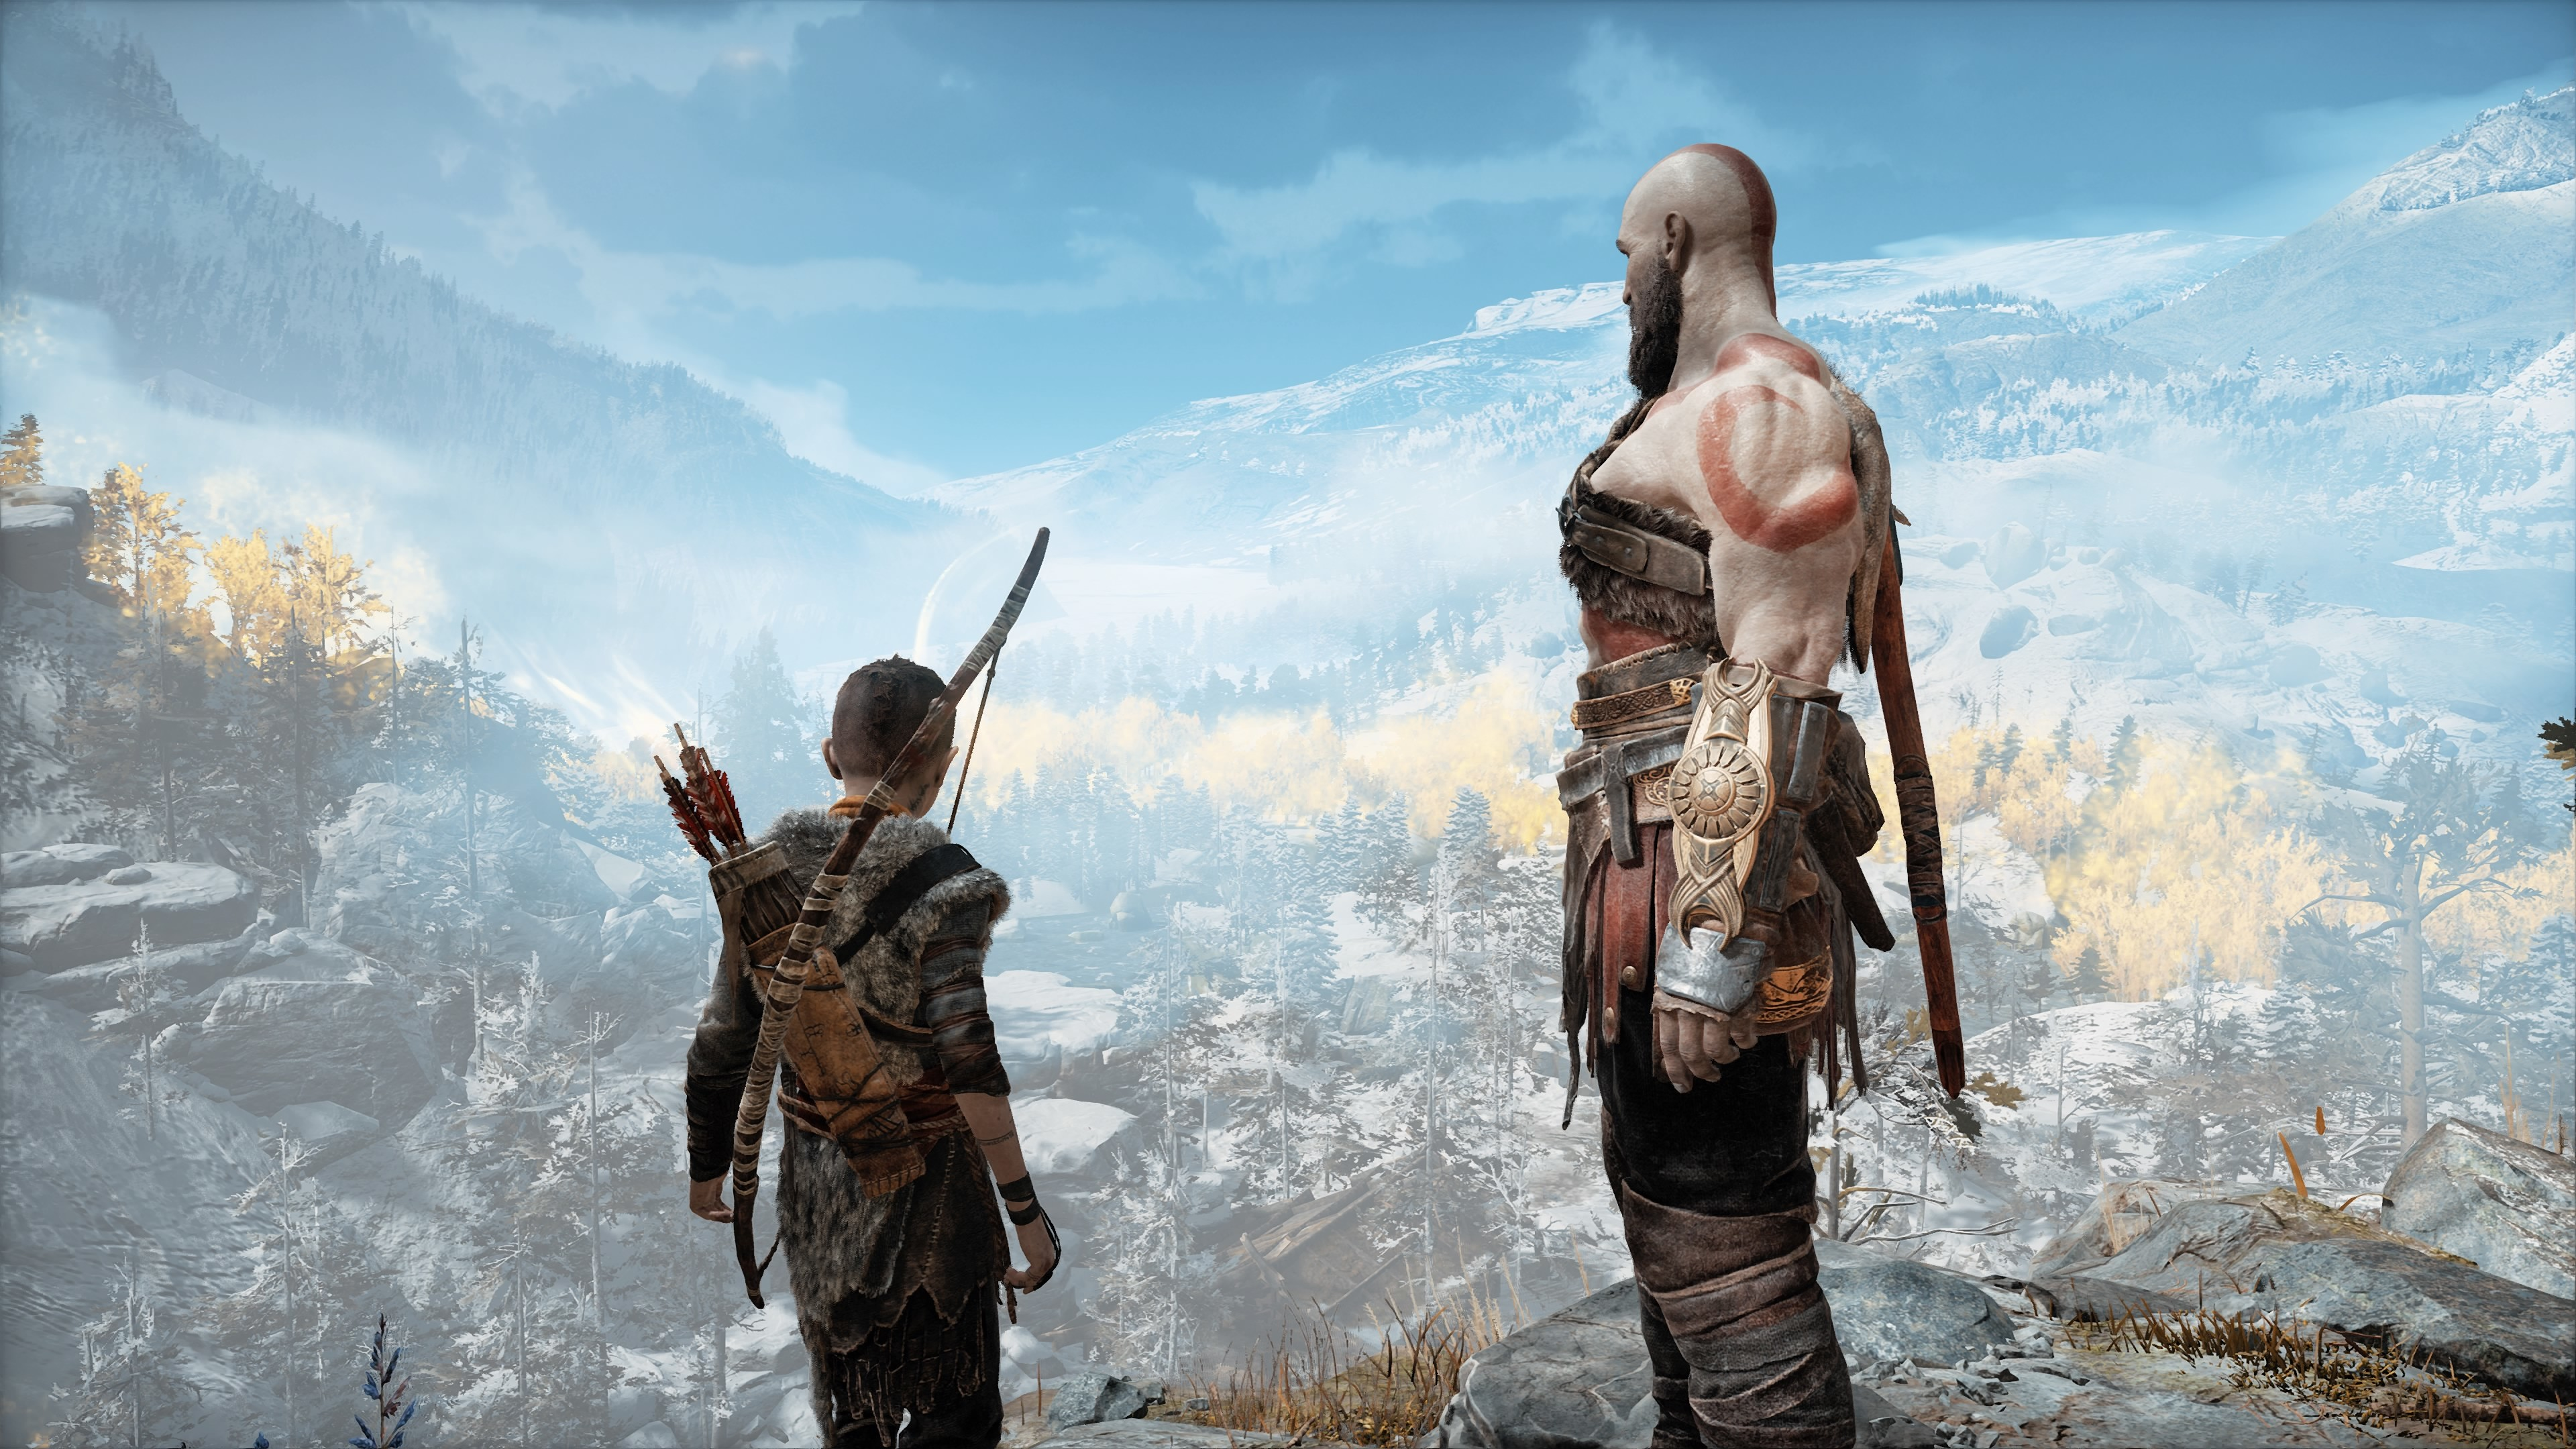 God Of War 4 Kratos And Atreus 4k Hd Games 4k Wallpapers